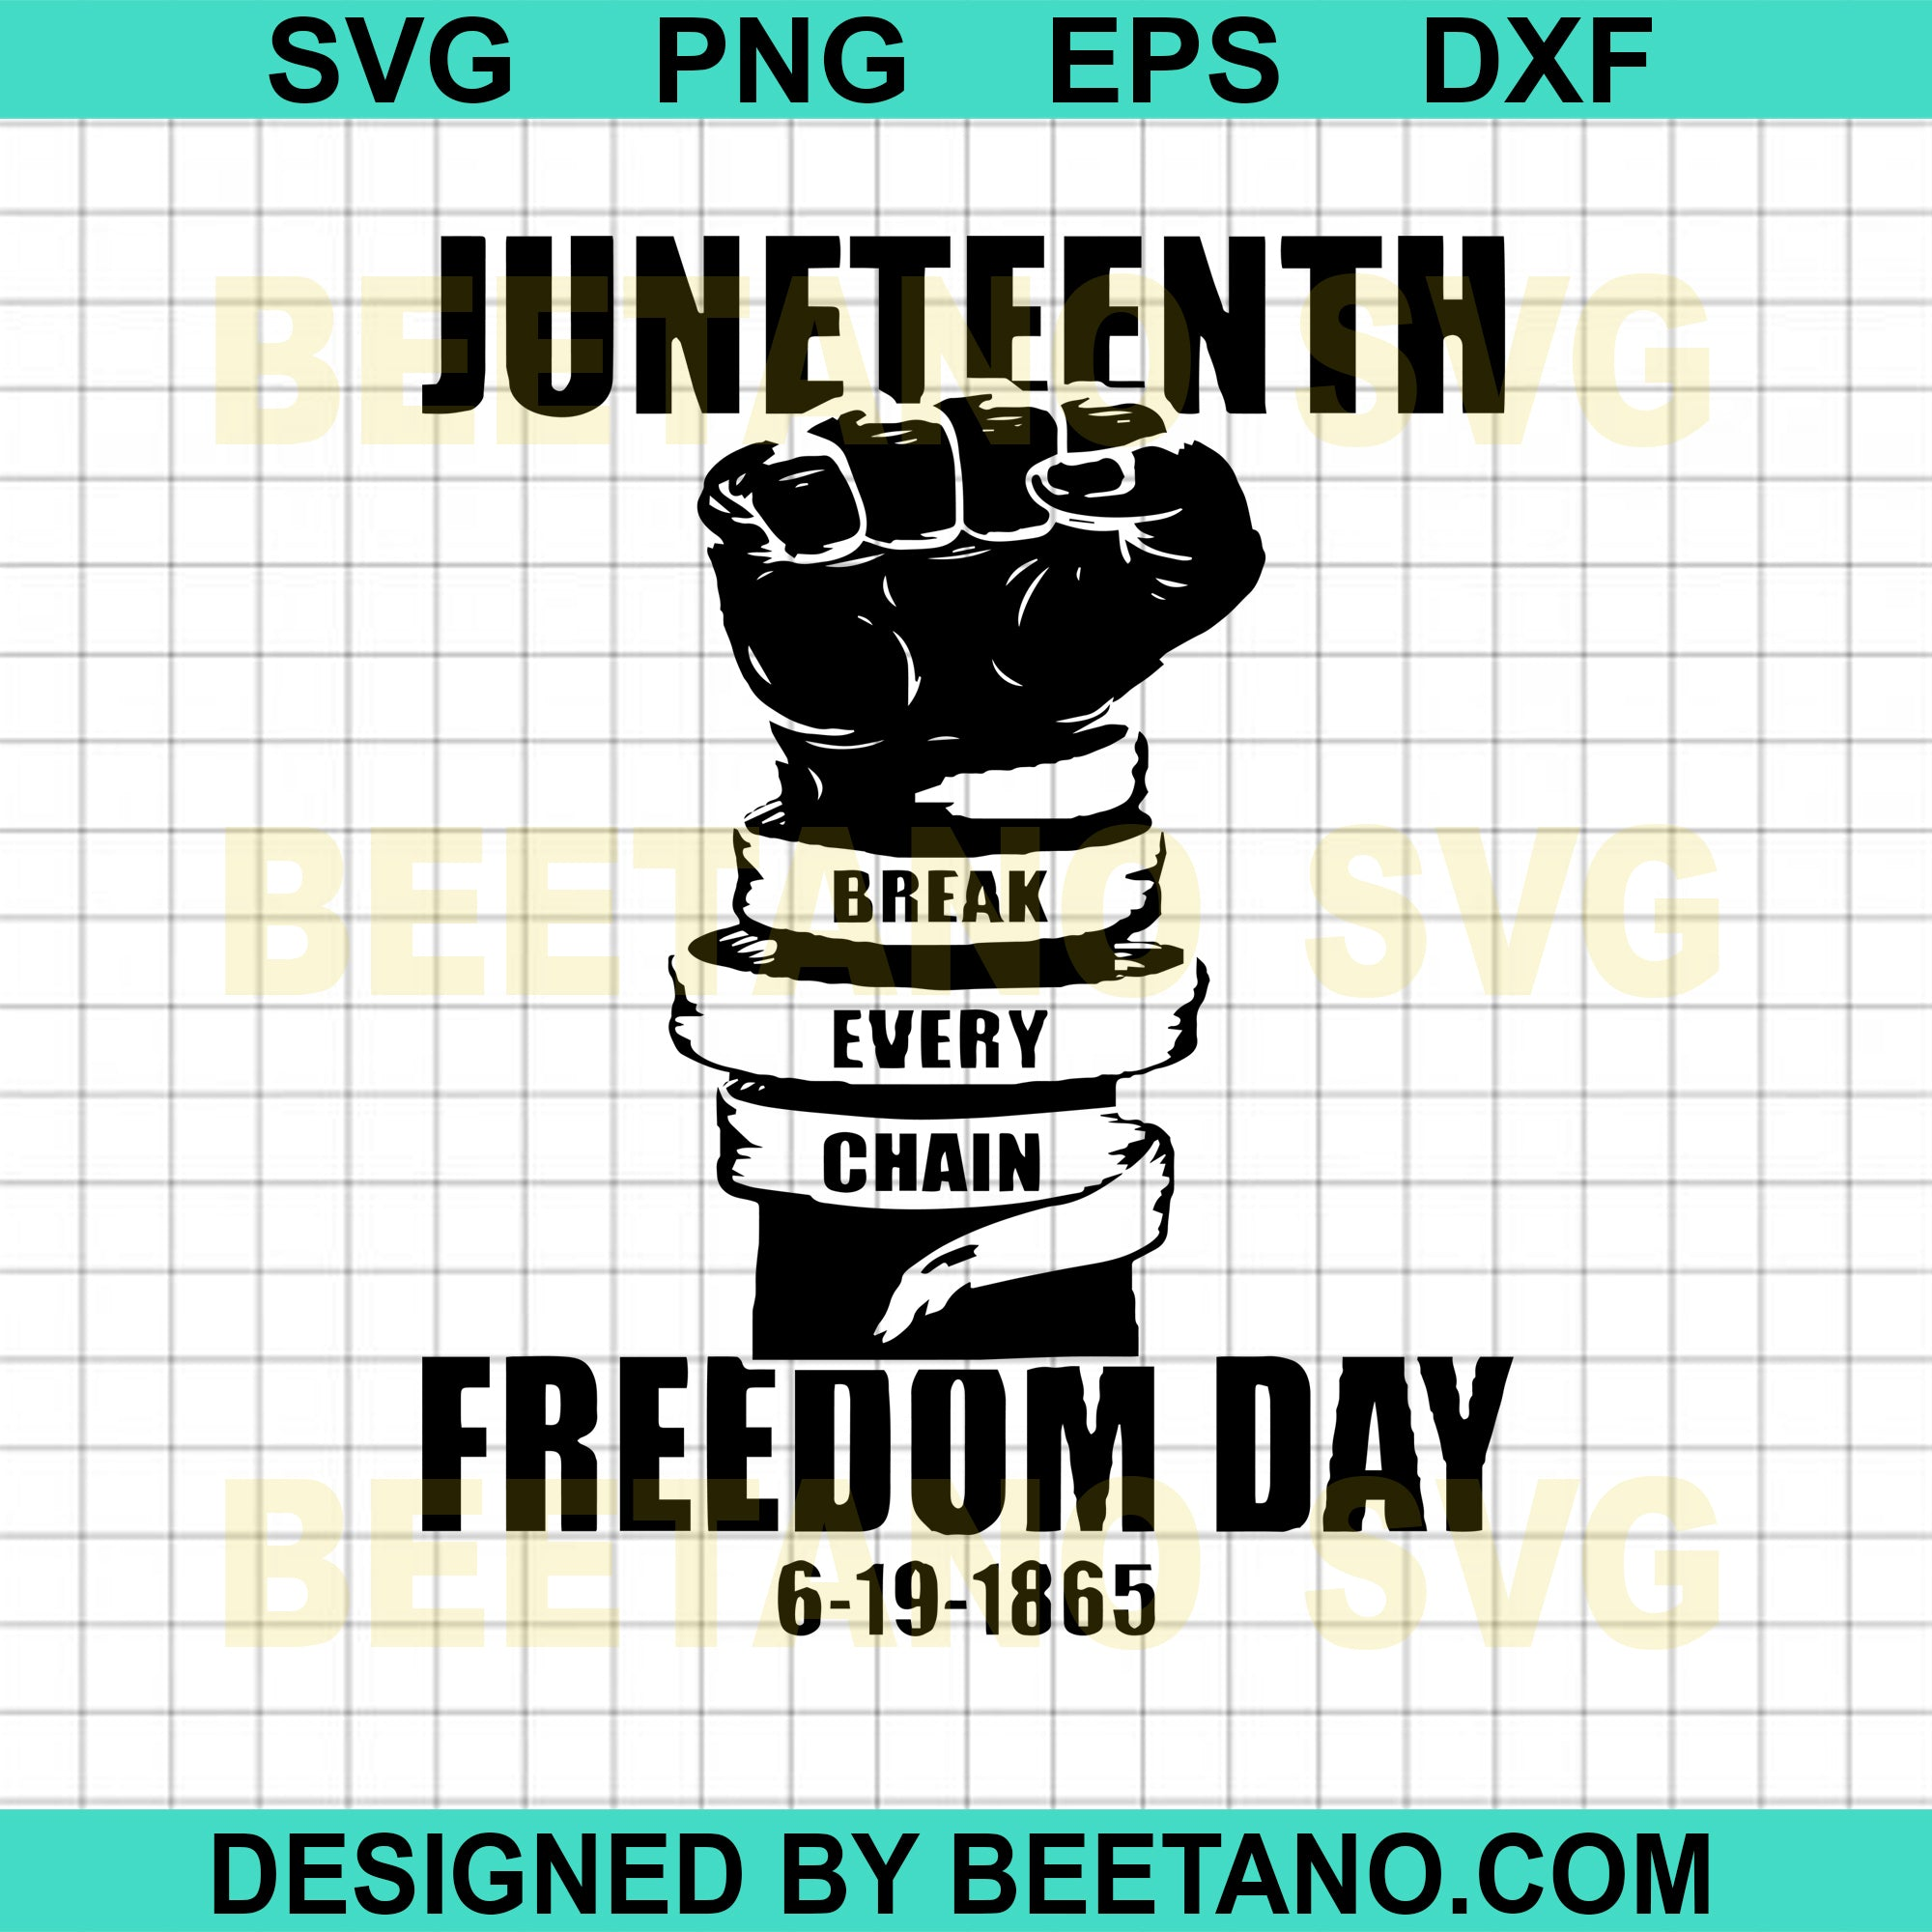 Juneteenth Break Every Chain Freedom Day Hand Svg, Freedom Day Svg Files